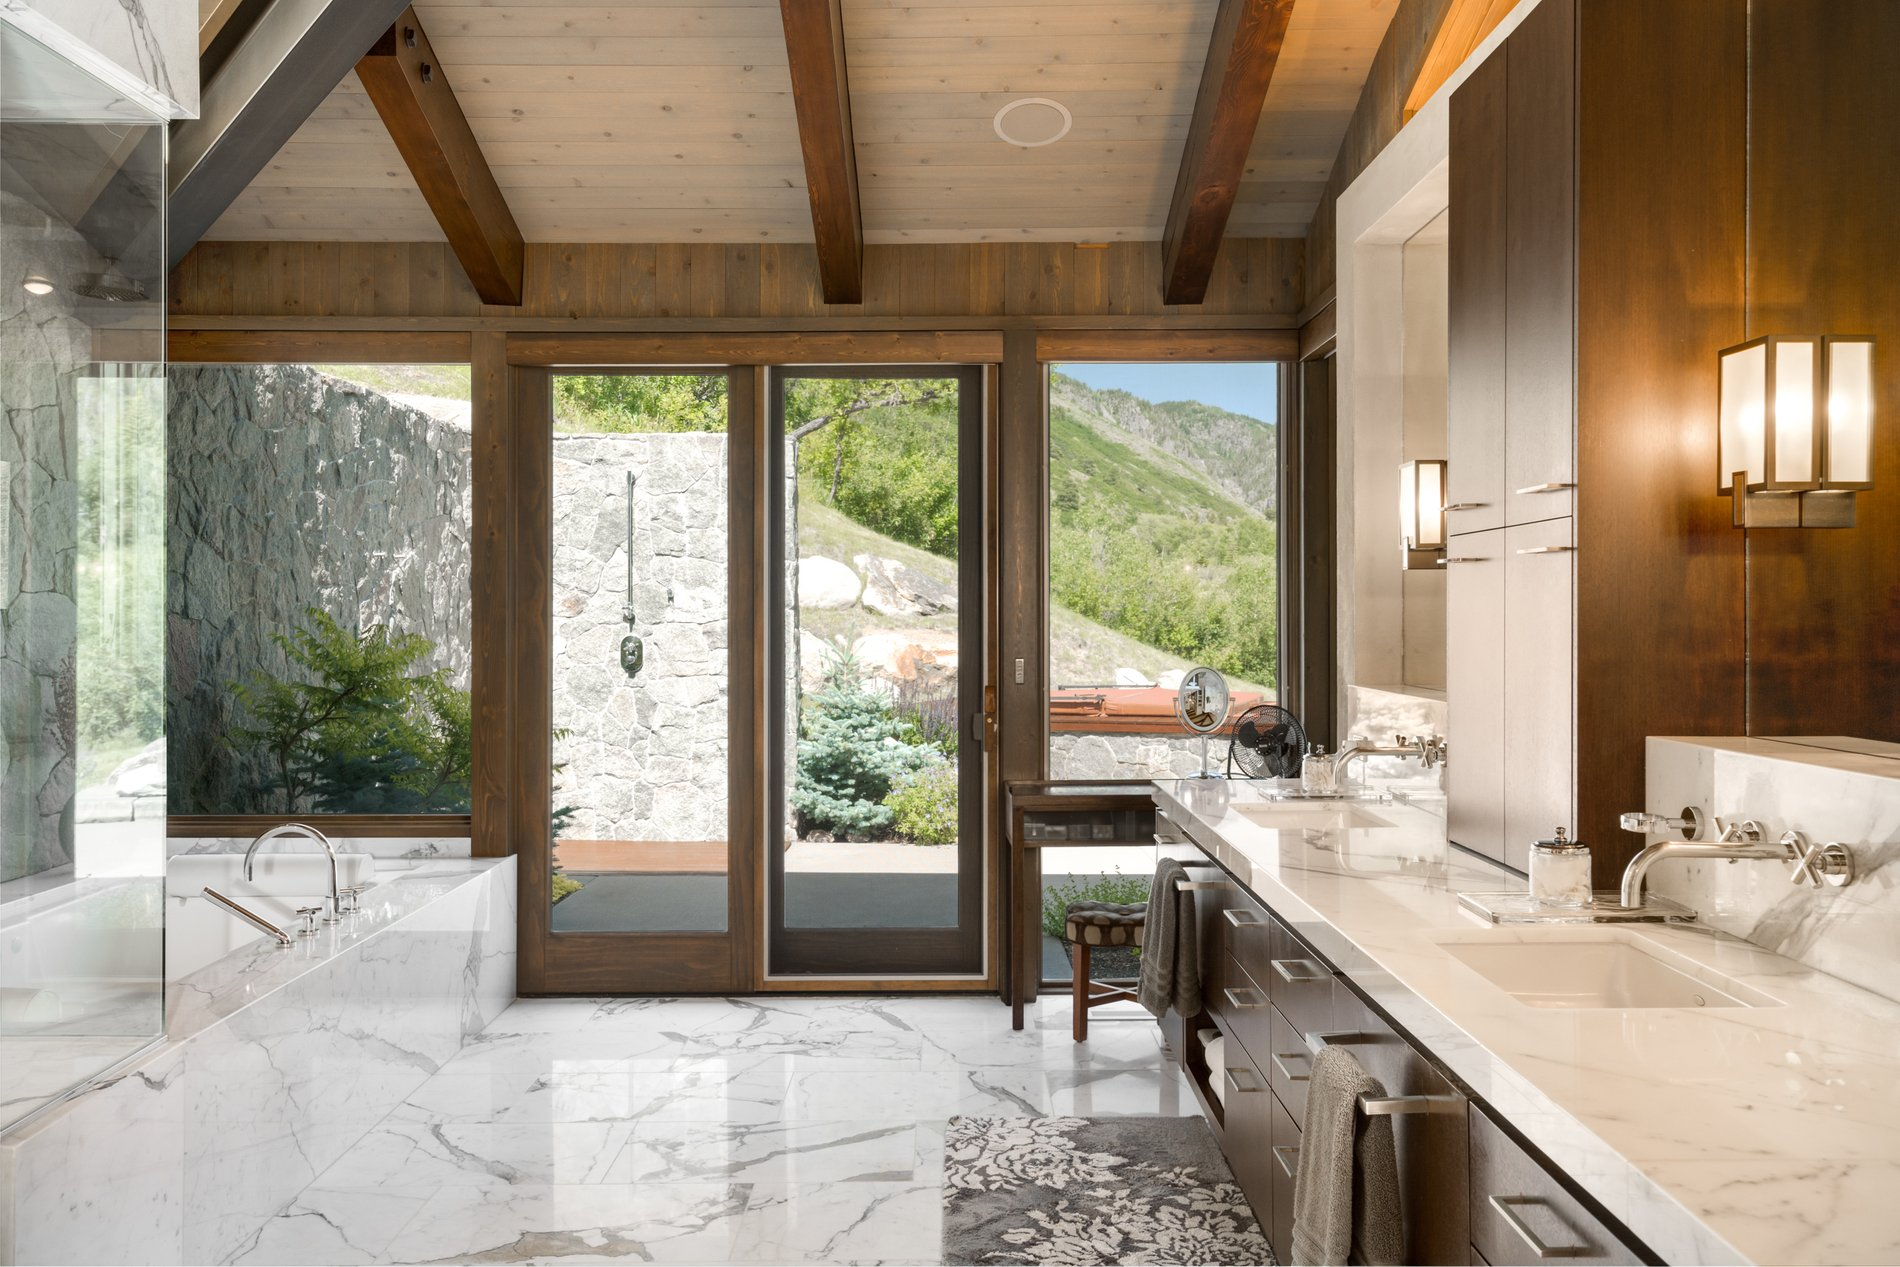 Beautiful luxury master bathroom with a private balcony, lots of marble and double sinks. modern rustic home.